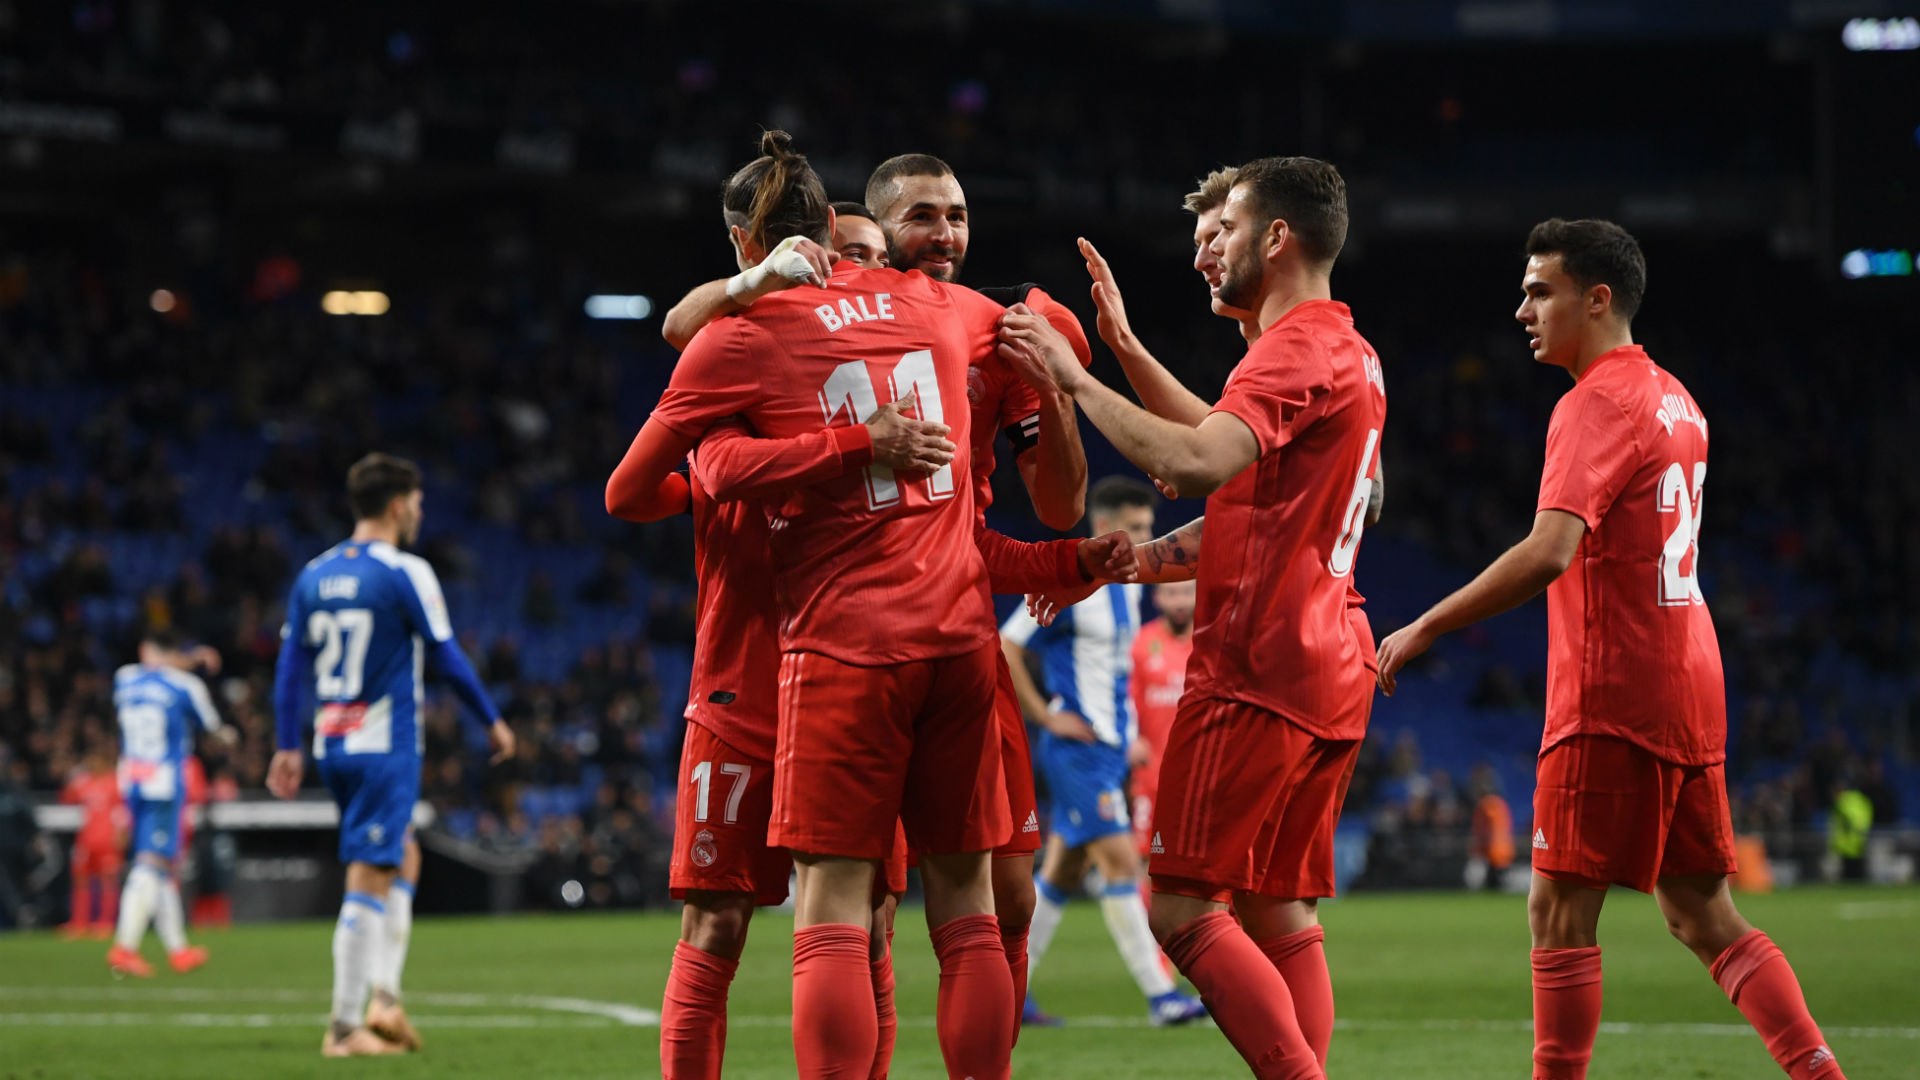 Solari lauds two-goal Benzema after inspired Espanyol display